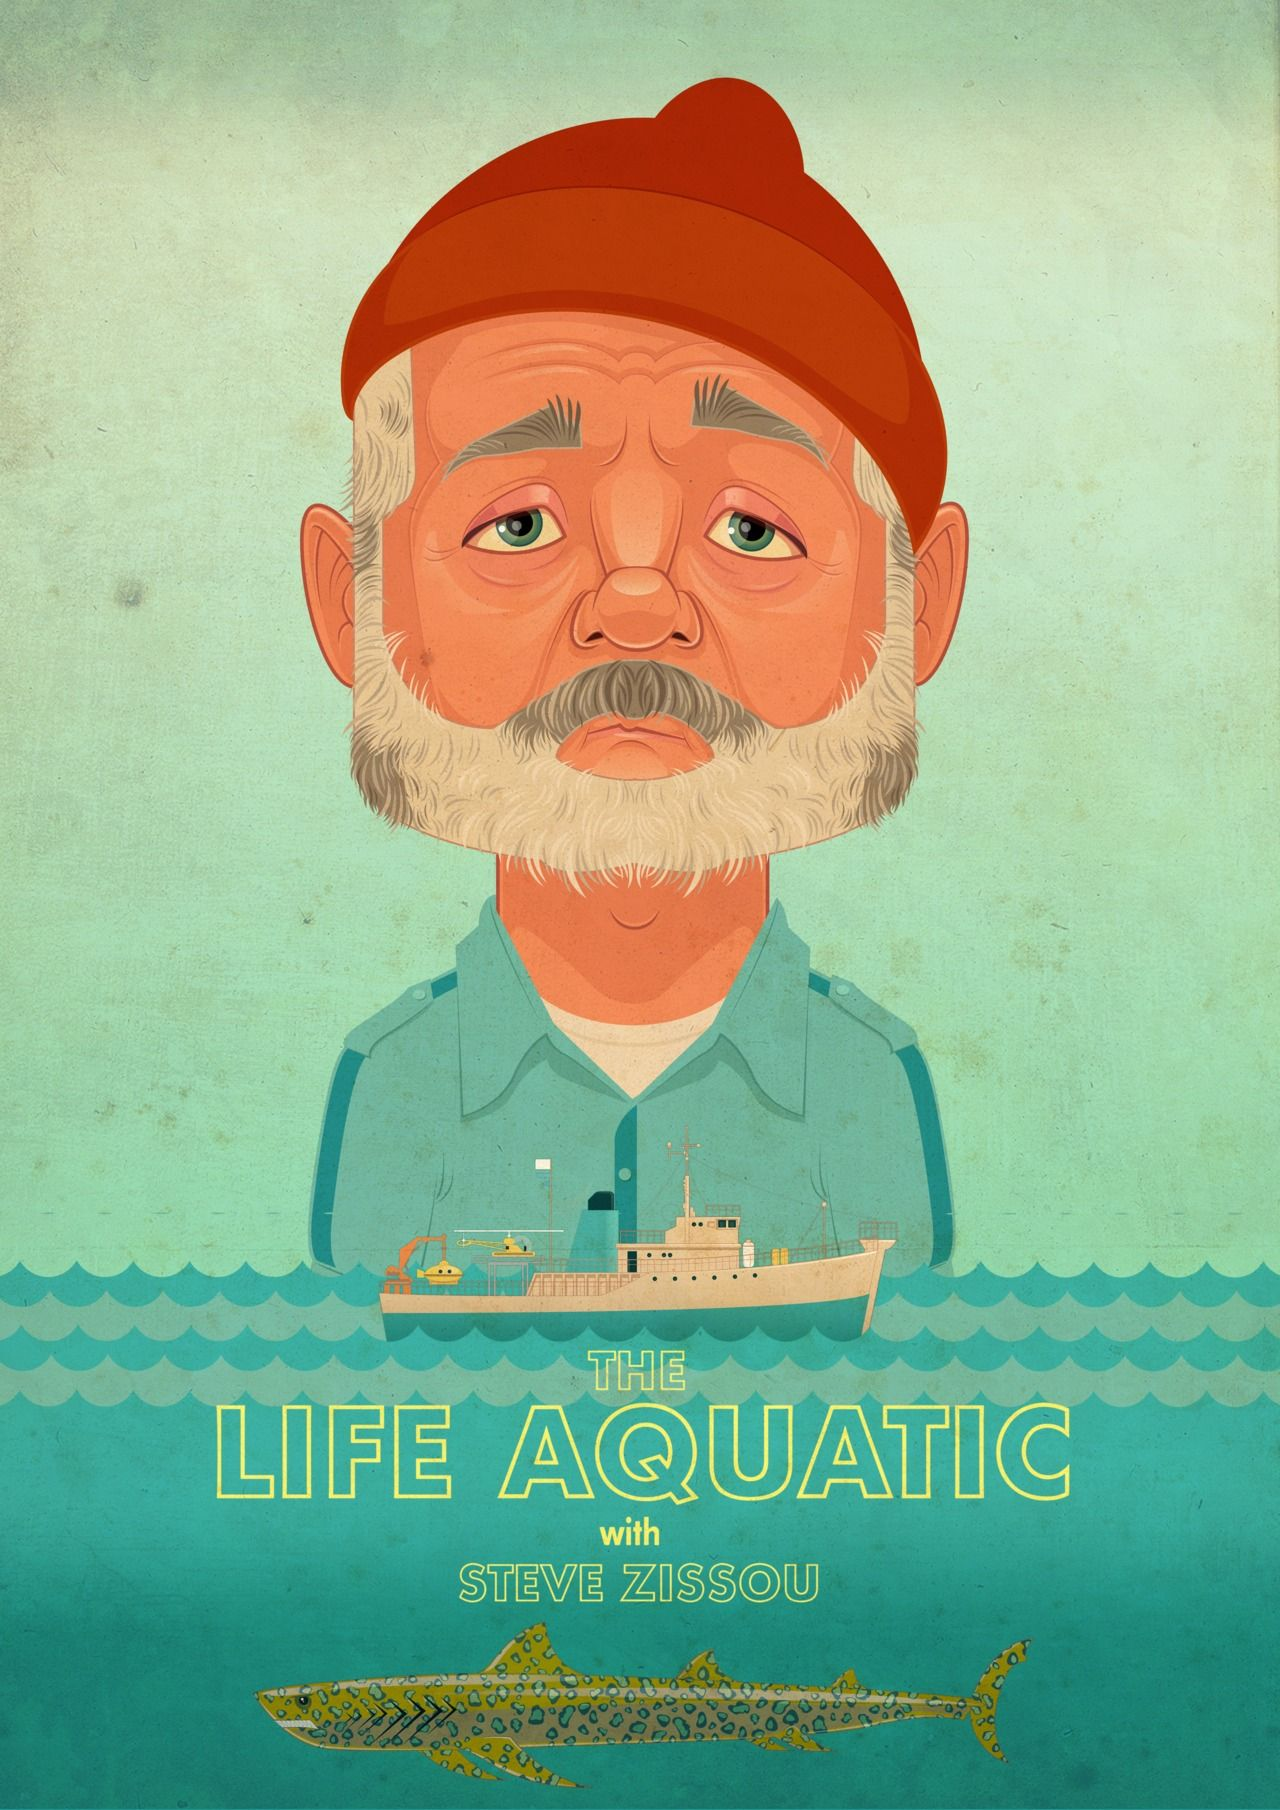 The Life Aquatic James Gilleard Giclee Print Framed 11 3 4 X 16 1 2 Life Aquatic Steve Zissou Alternative Movie Posters